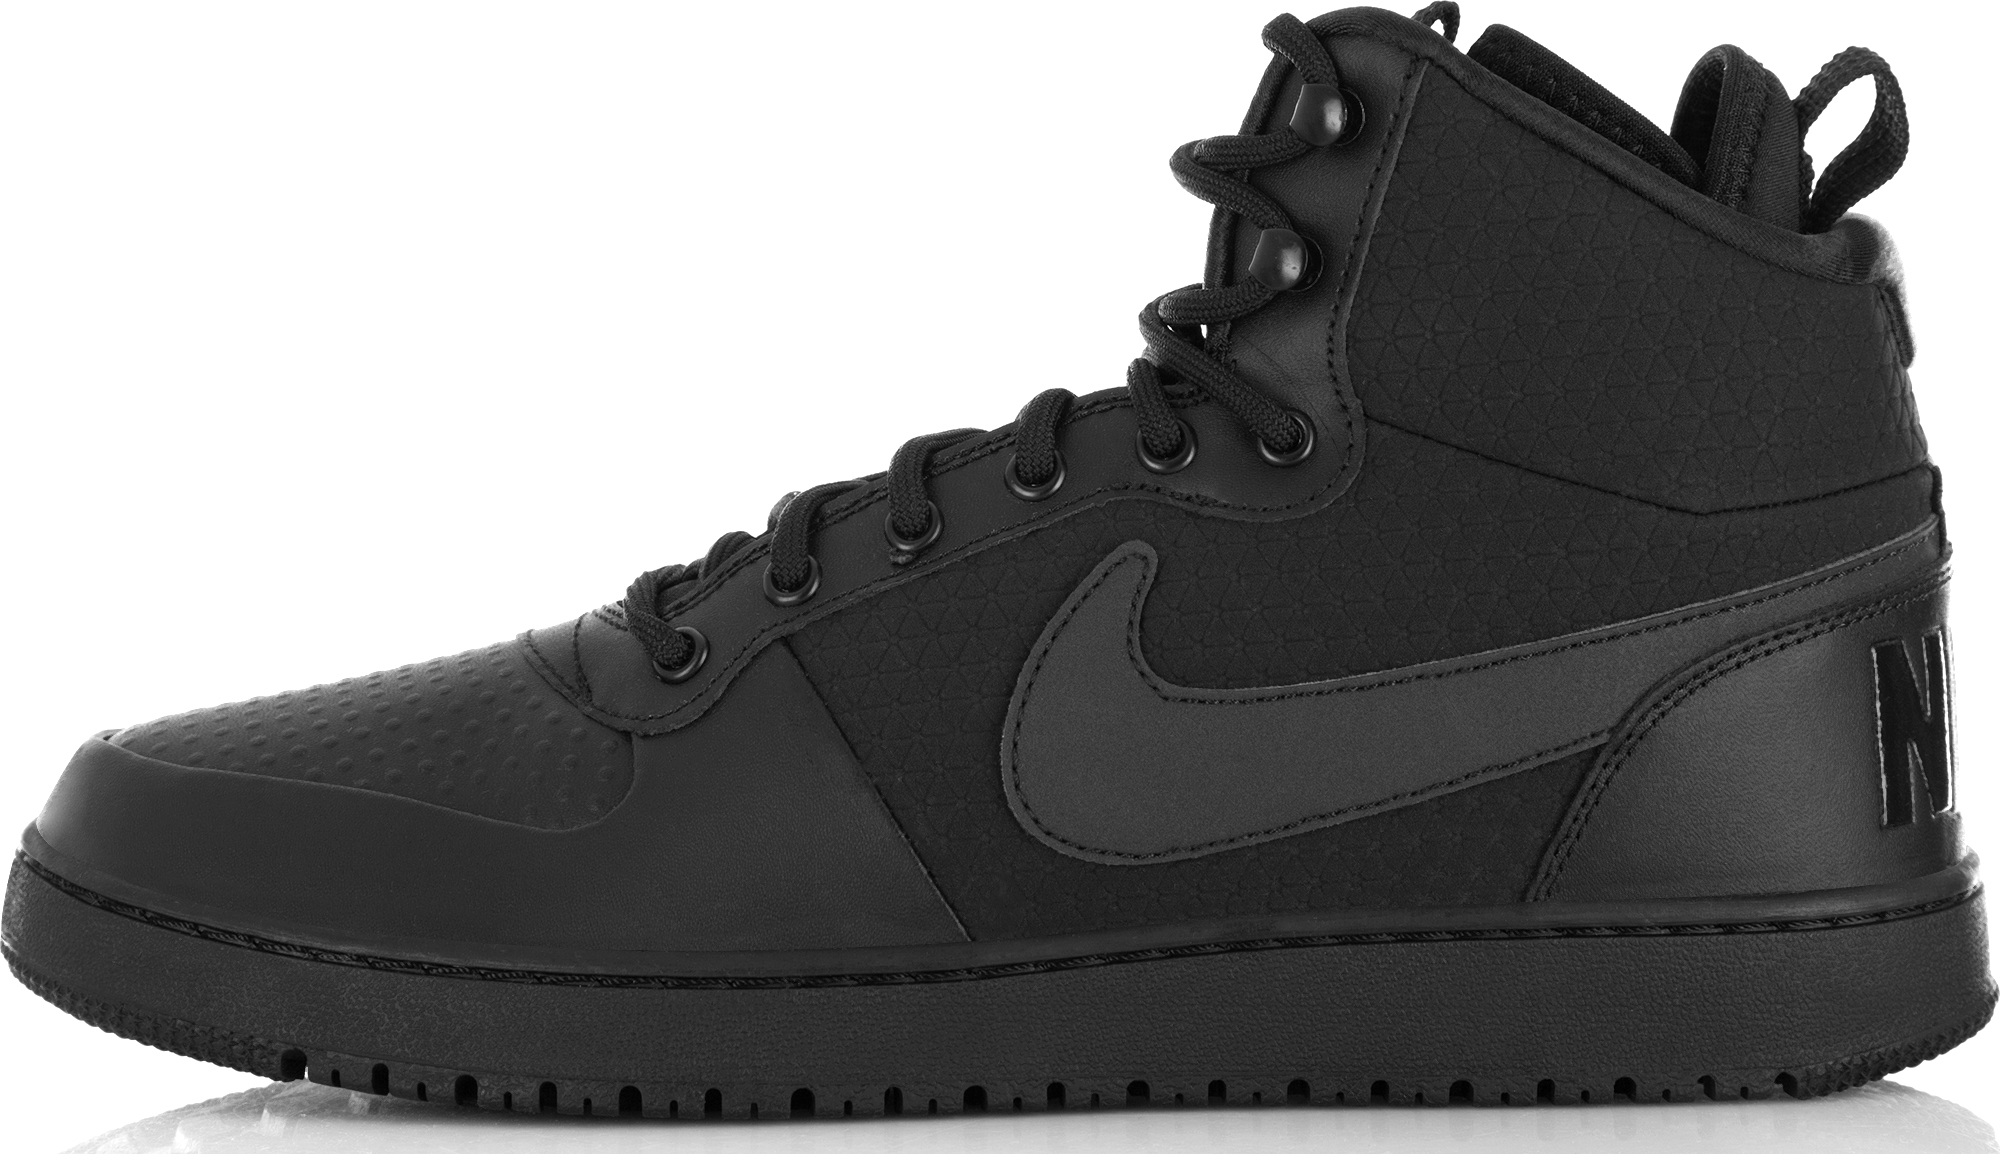 Nike Кеды мужские Nike Court Borough Mid Winter nike court borough mid nike